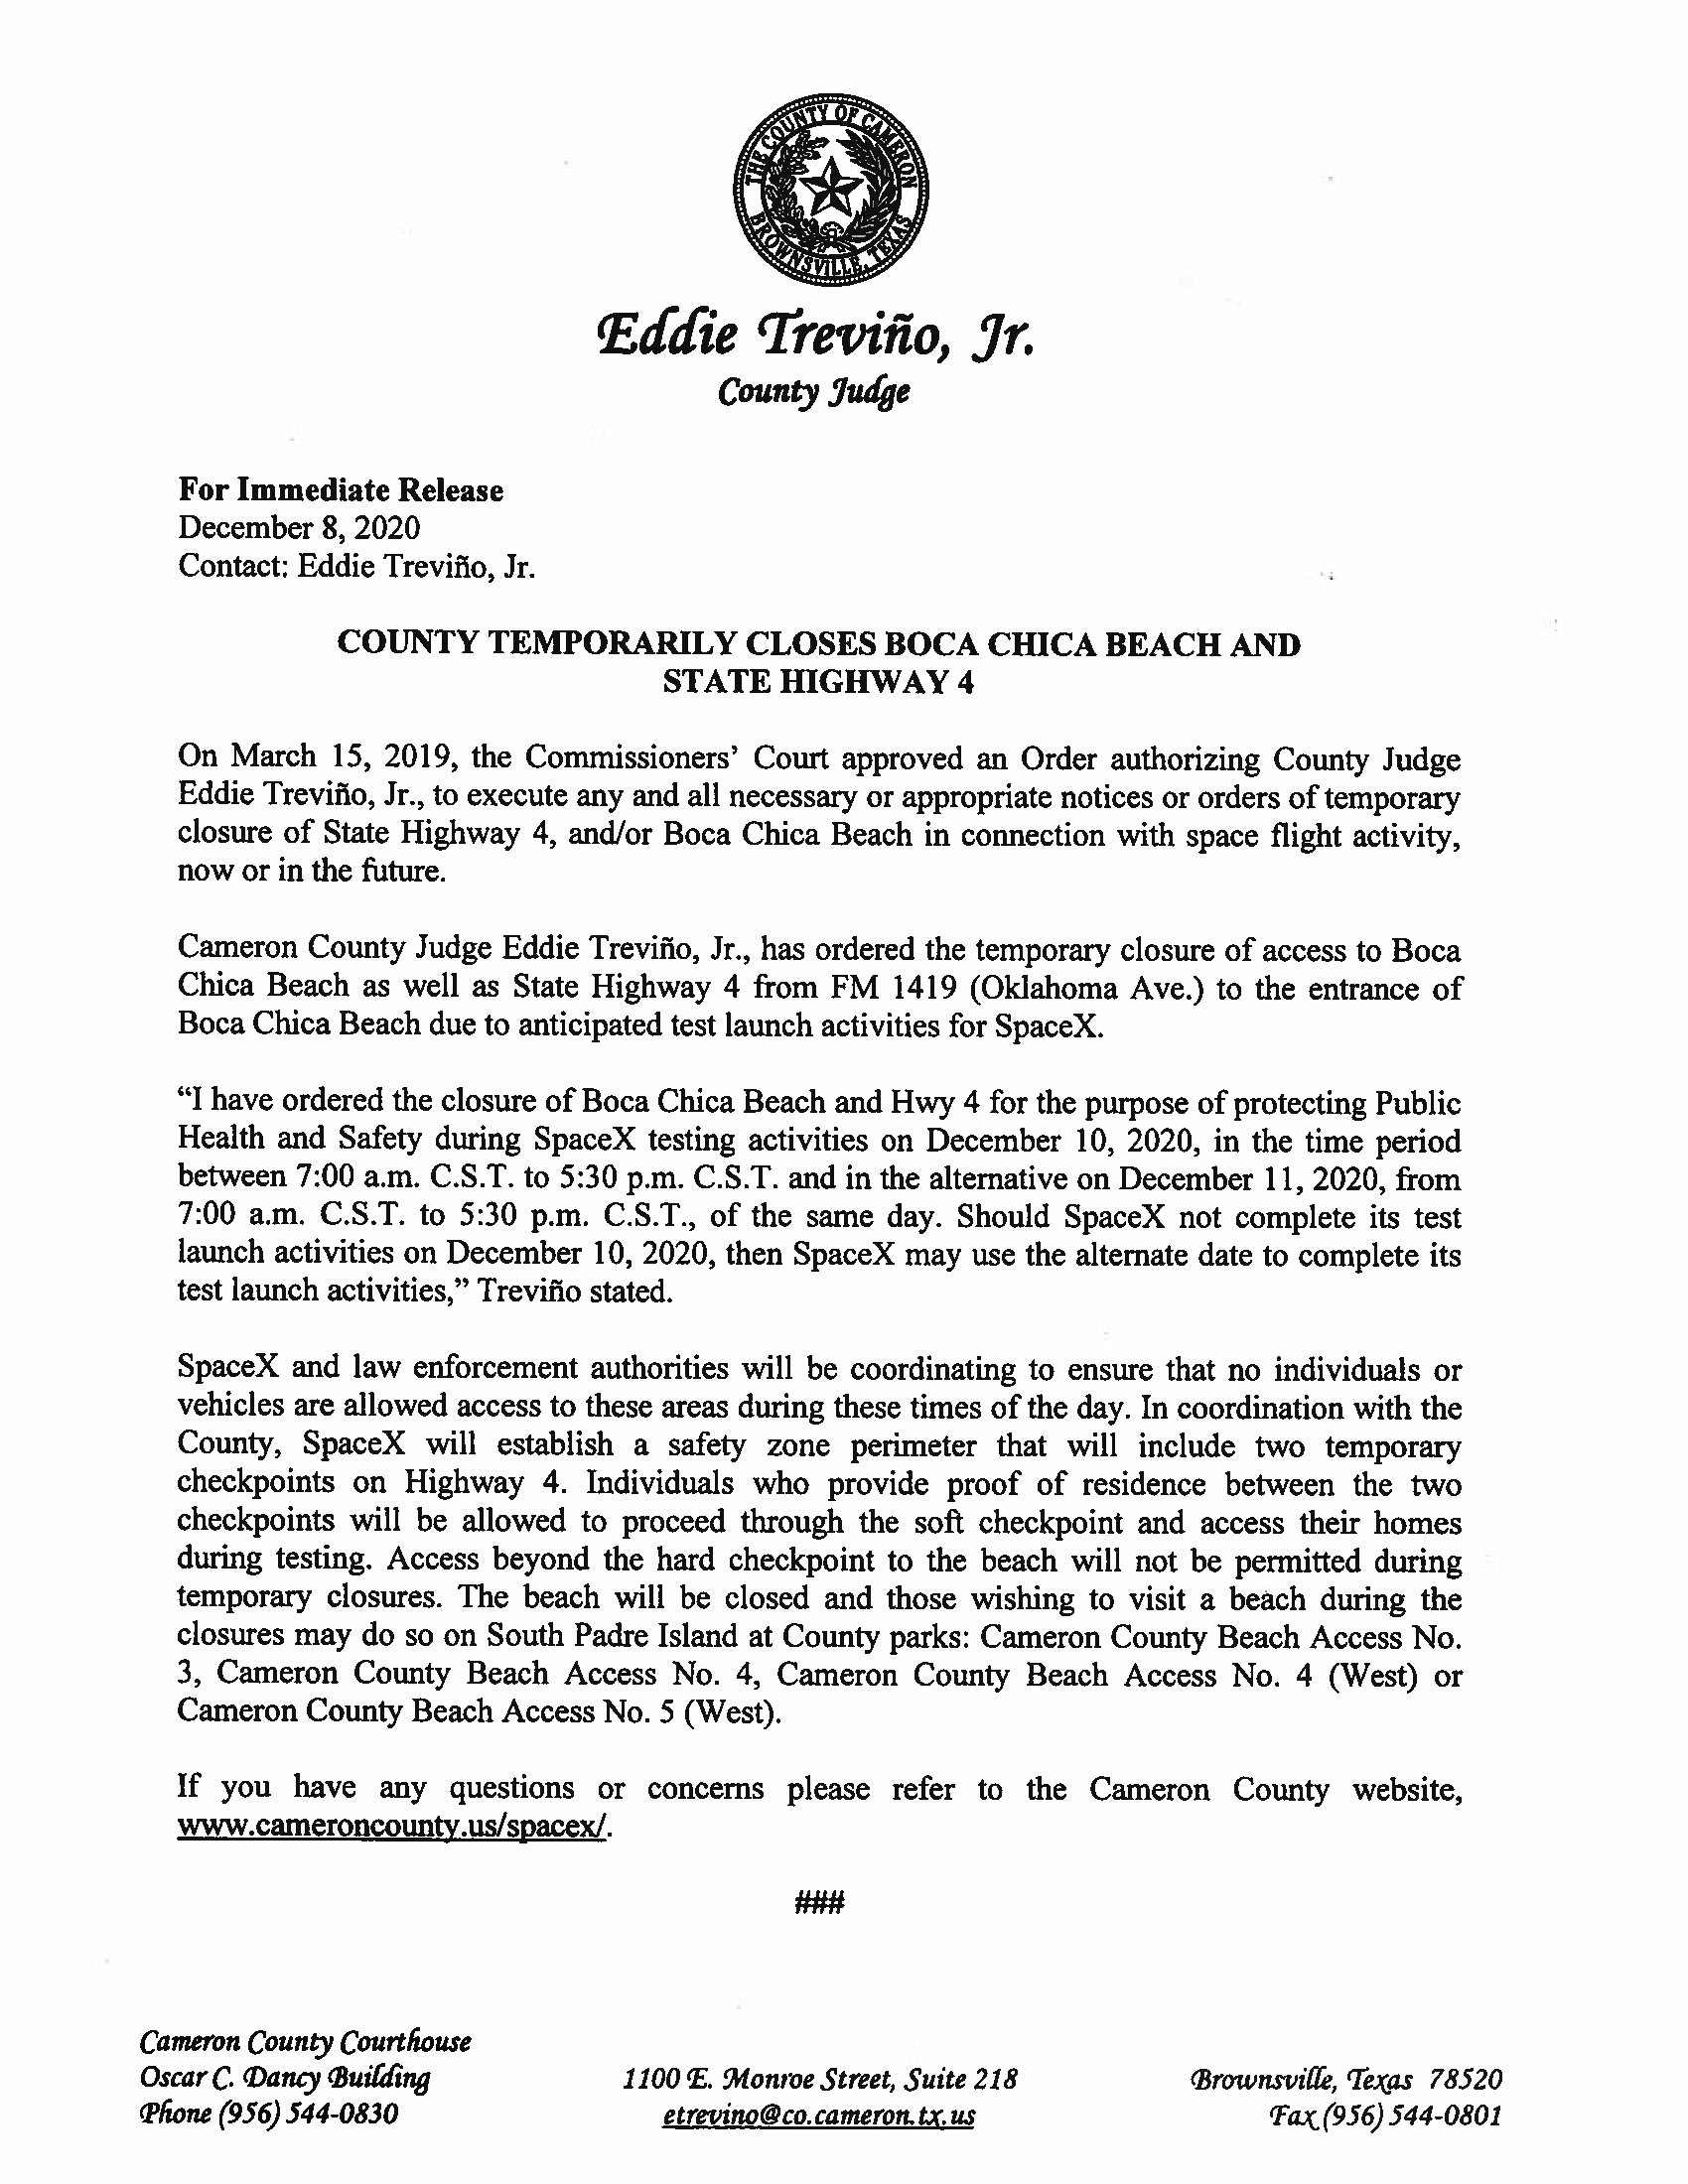 Press Release On Order Of Closure Related To SpaceX Flight.12.10.2020.doc Page 1